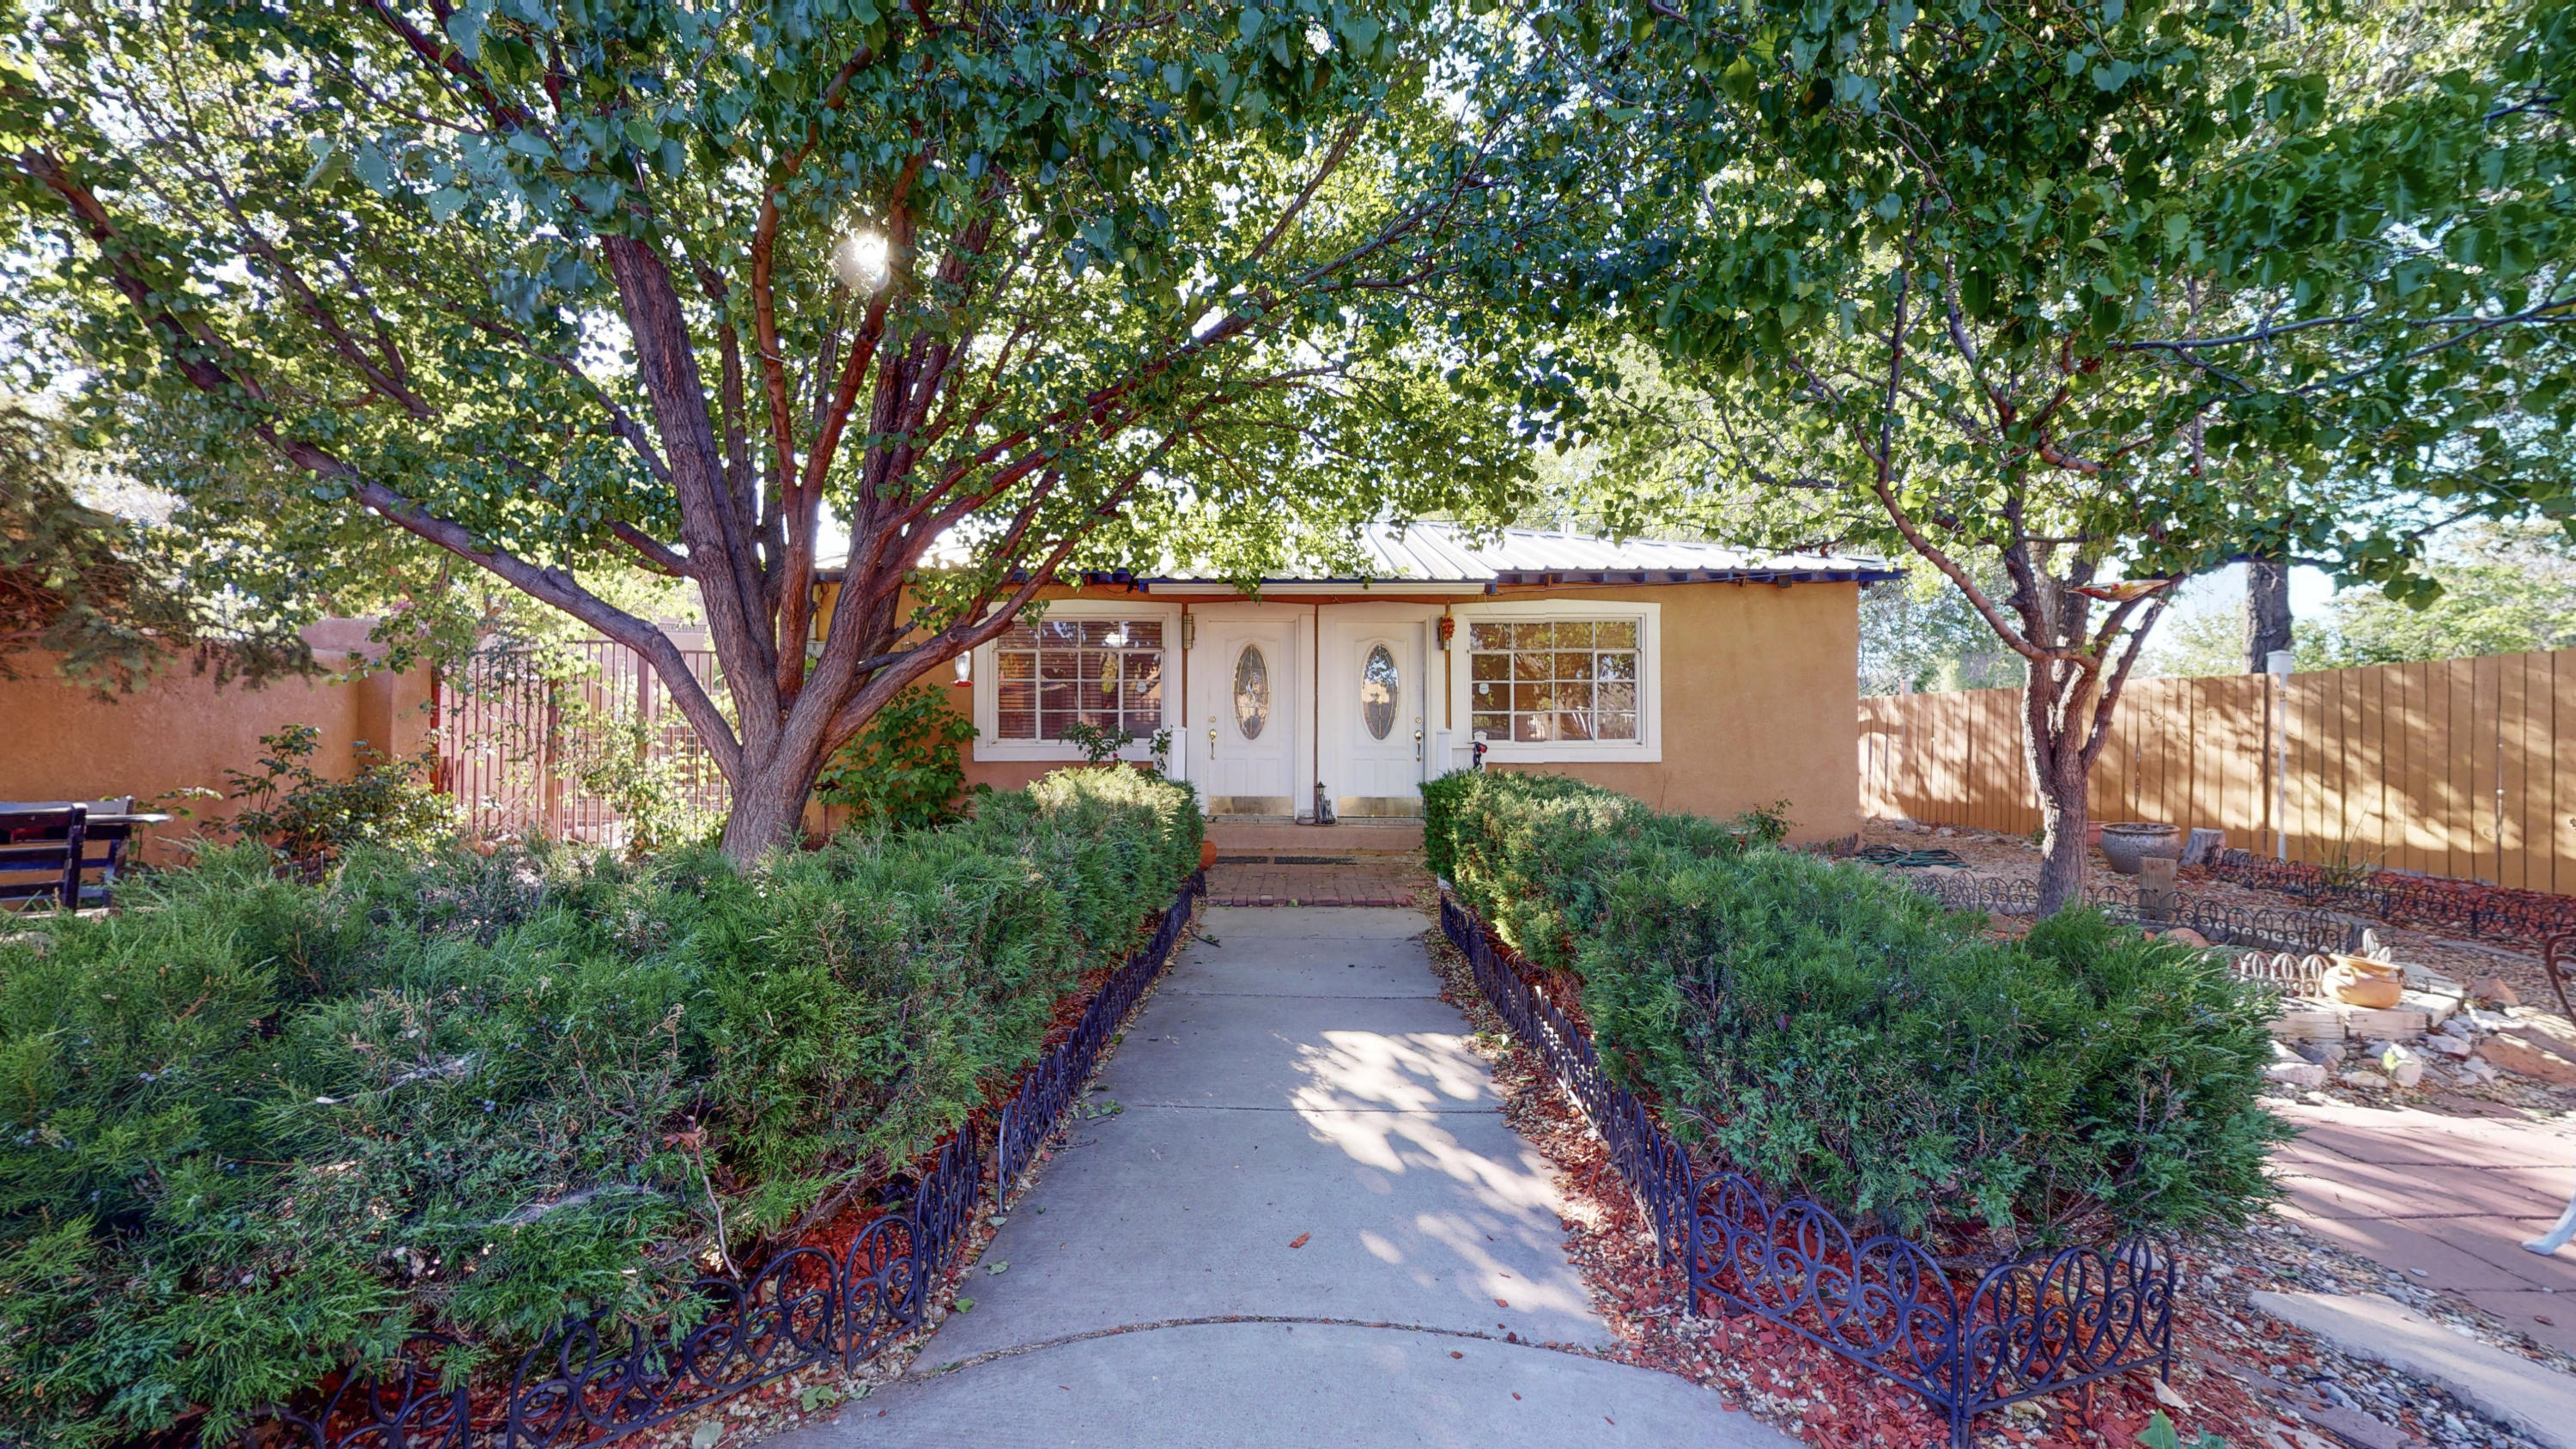 Beautiful North Valley property!  Just off Rio Grande near Old town and the Nature Center with easy access to the bosque trails and just north of I-40.  La Montanita Coop is right across the street.  Gated and fully fenced with  mature  landscape off a private, fairly hidden driveway.   This townhome would be a great opportunity for rental income, an office for an attorney or CPA.   Up to 6 private parking spaces with community parking available. Rare Zoning!Zoned C-1 & Multi-family Res U4U, Current rental income is $1295 per unit.